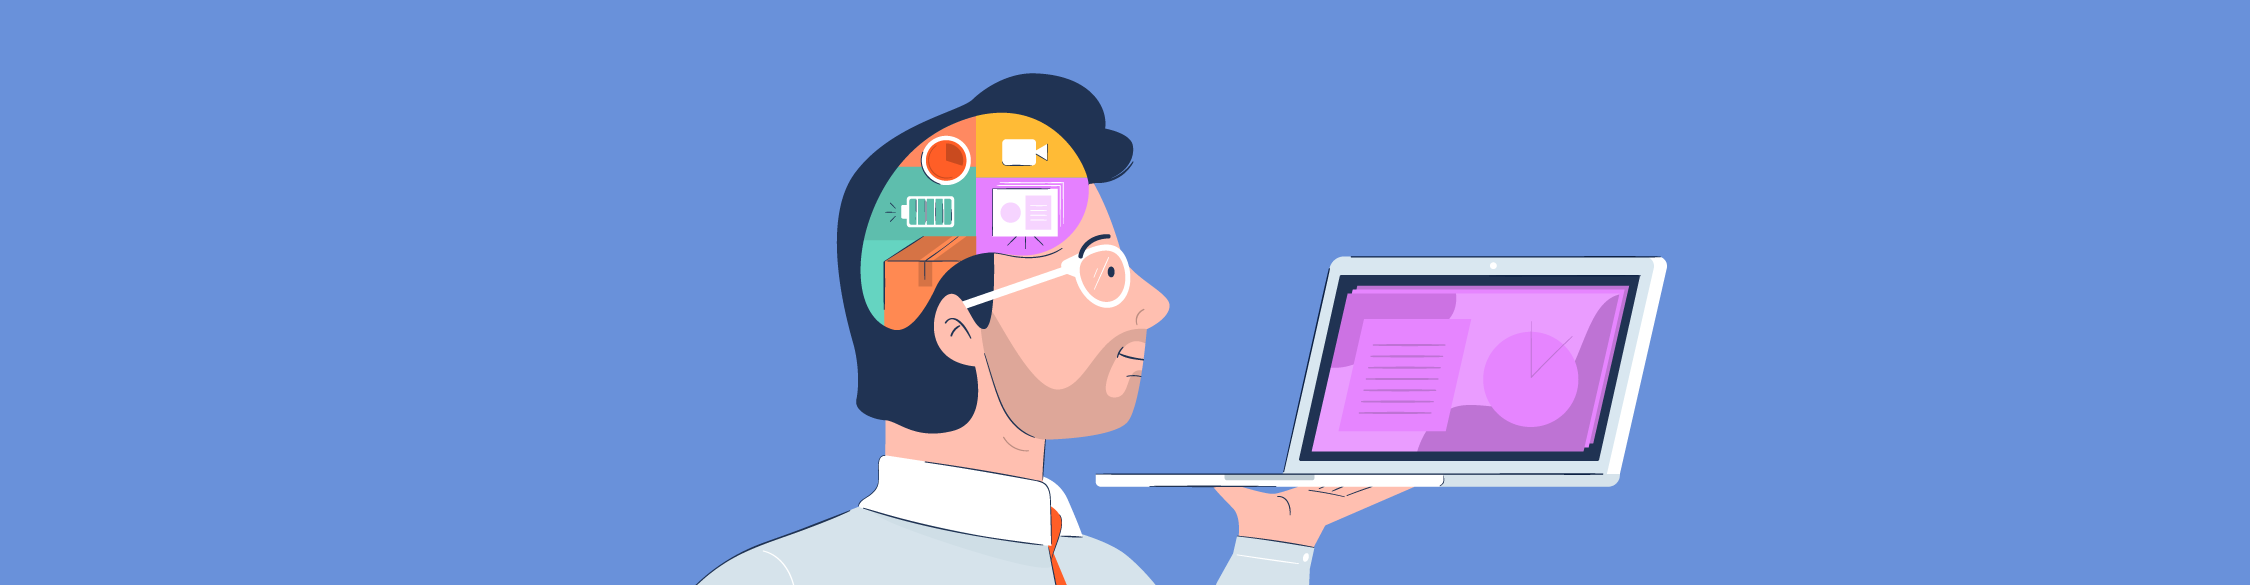 How to Memorize a Presentation: 12 Ways Only Pros Use